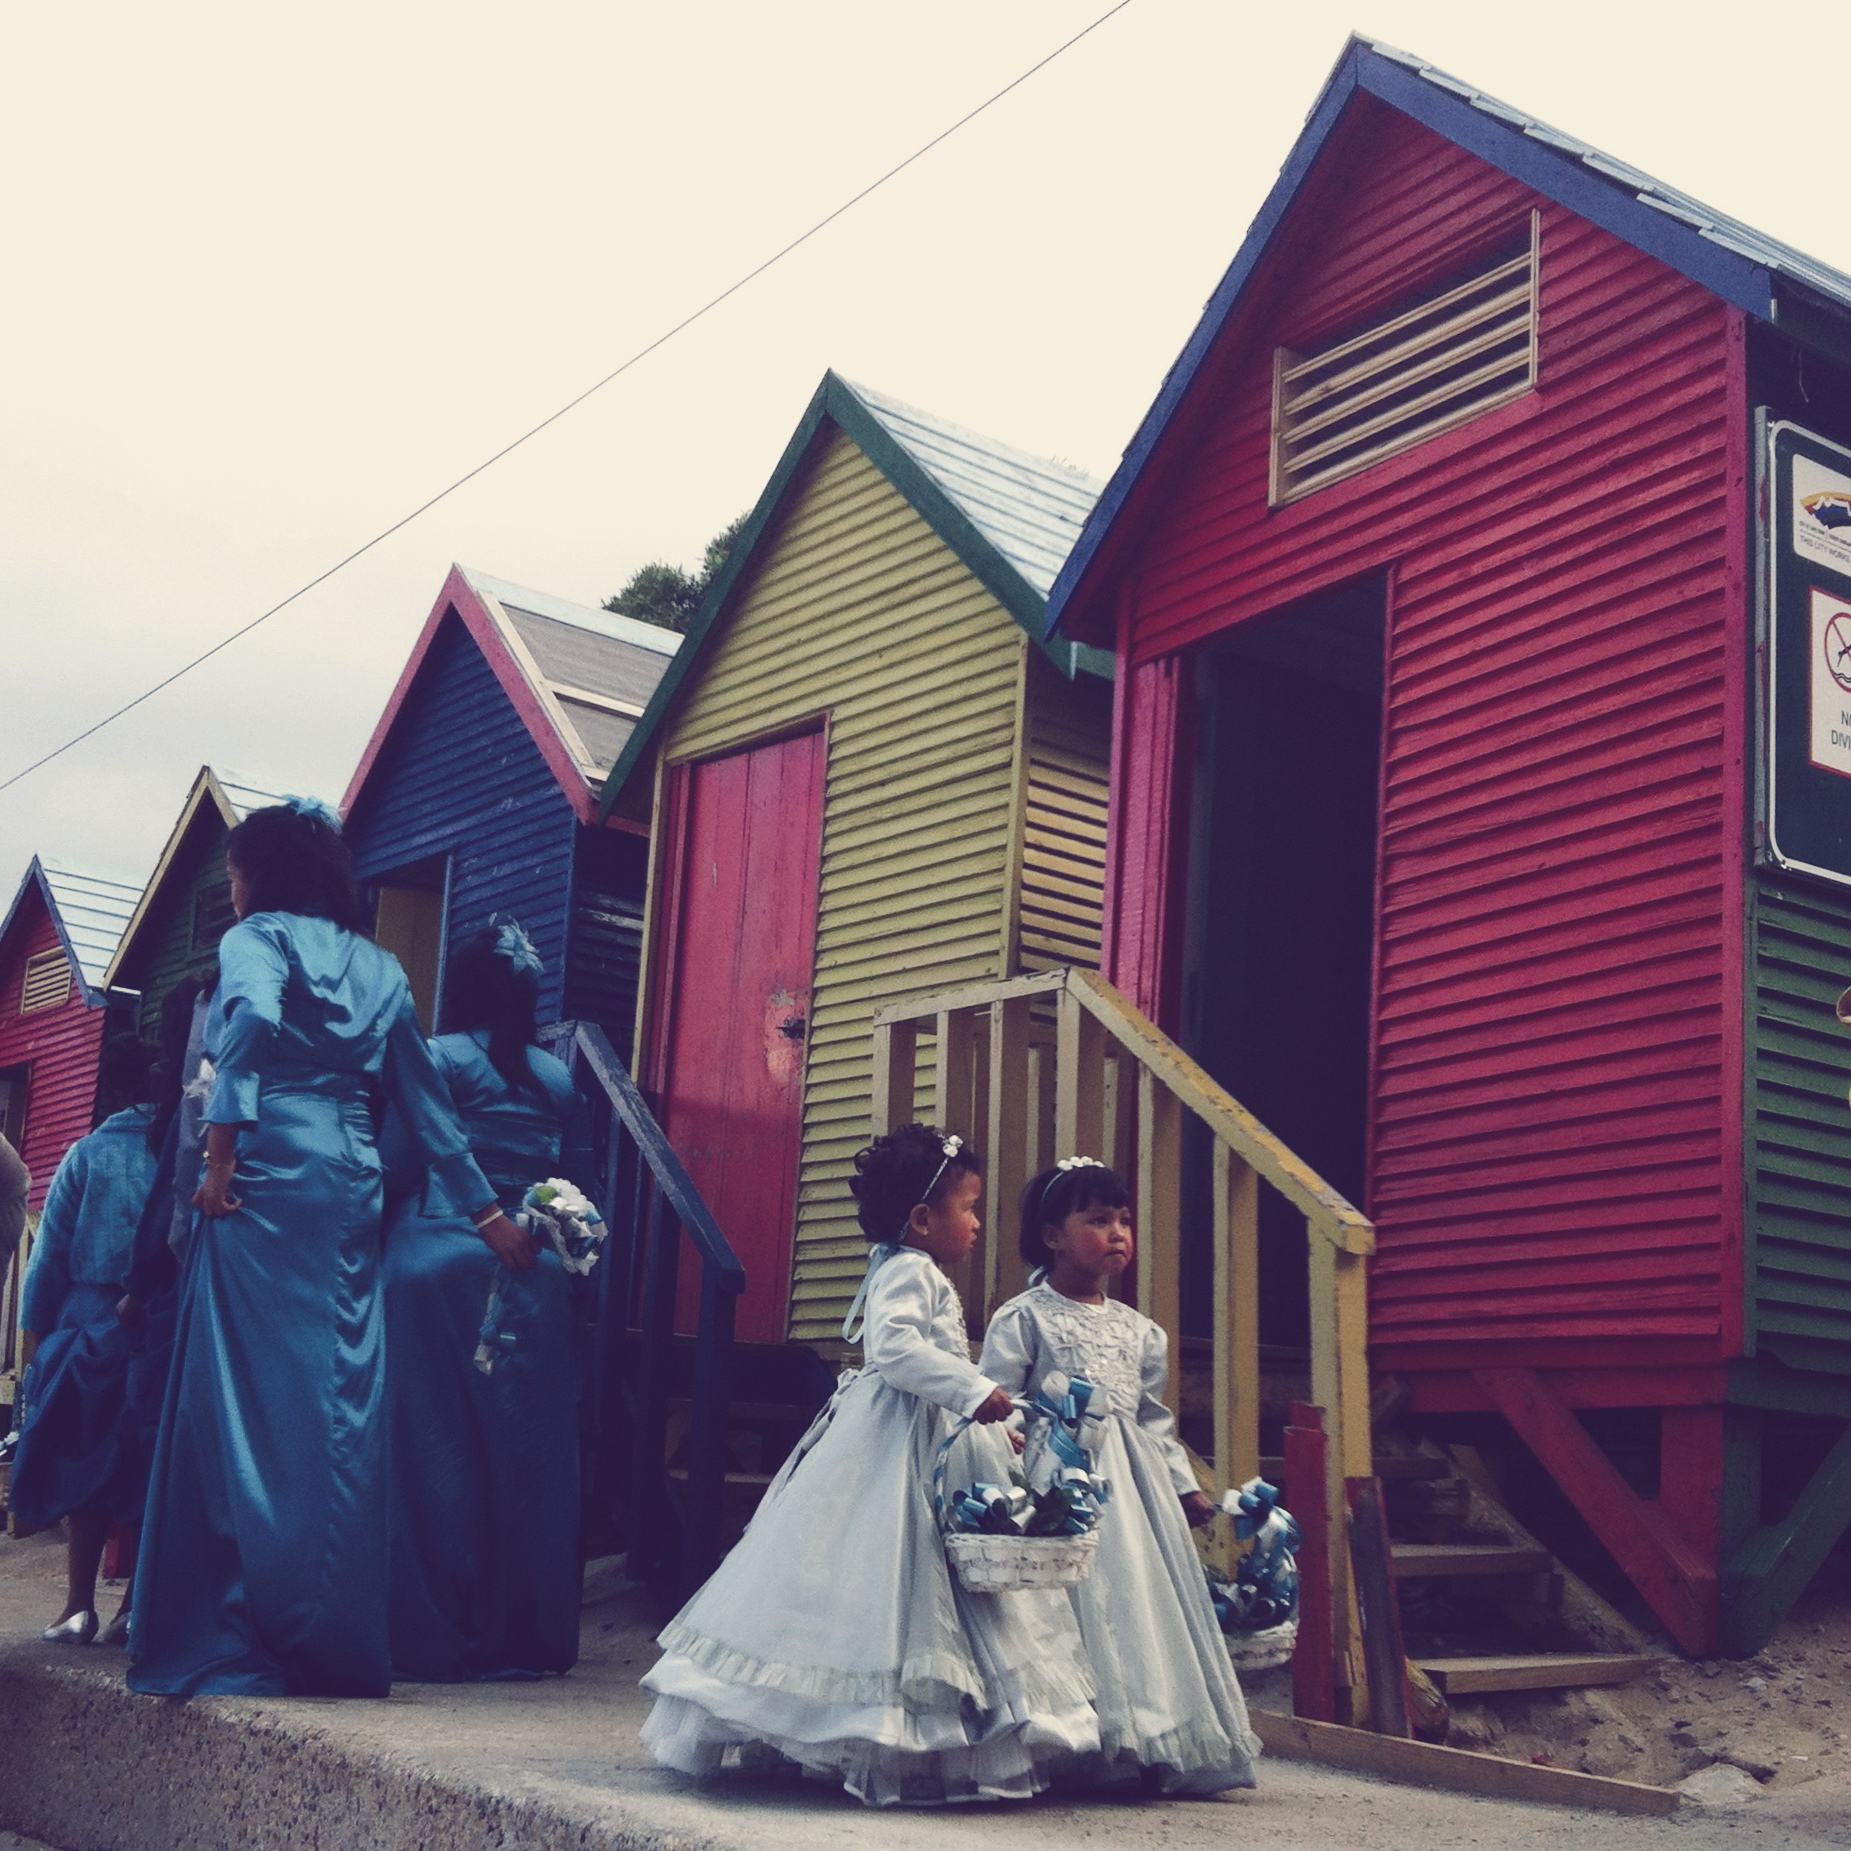 If you're lucky, on Saturdays you might spot a wedding party having their photos taken at the huts. These two little flower girls were being given strict instructions by a supervising aunty while the bridesmaids in blue satin walked off to pose on the stairs.